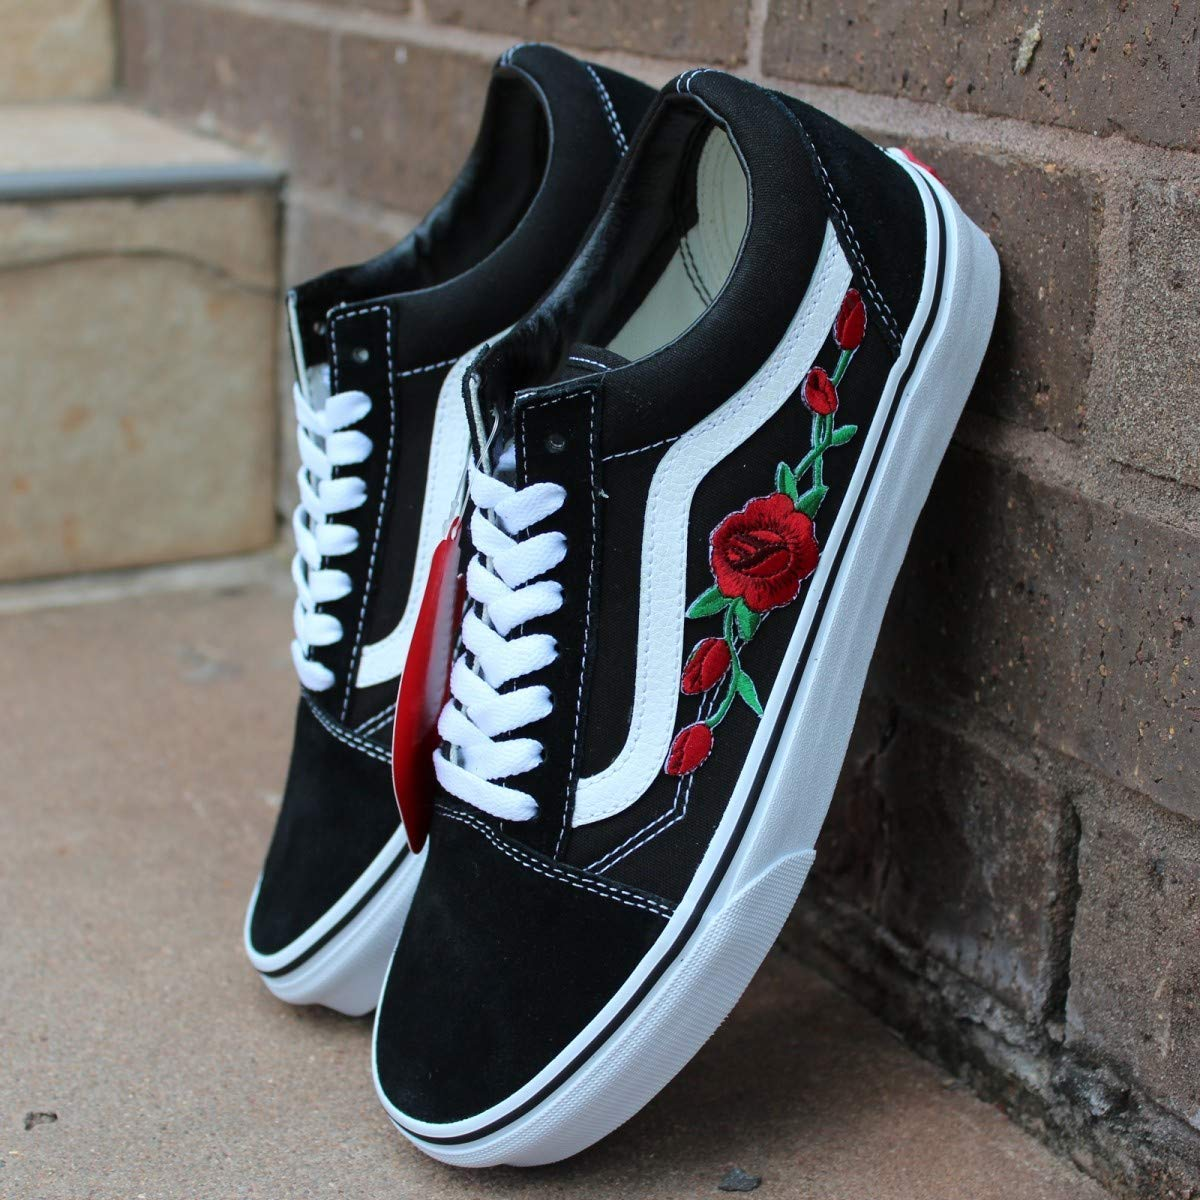 vans roses old skool